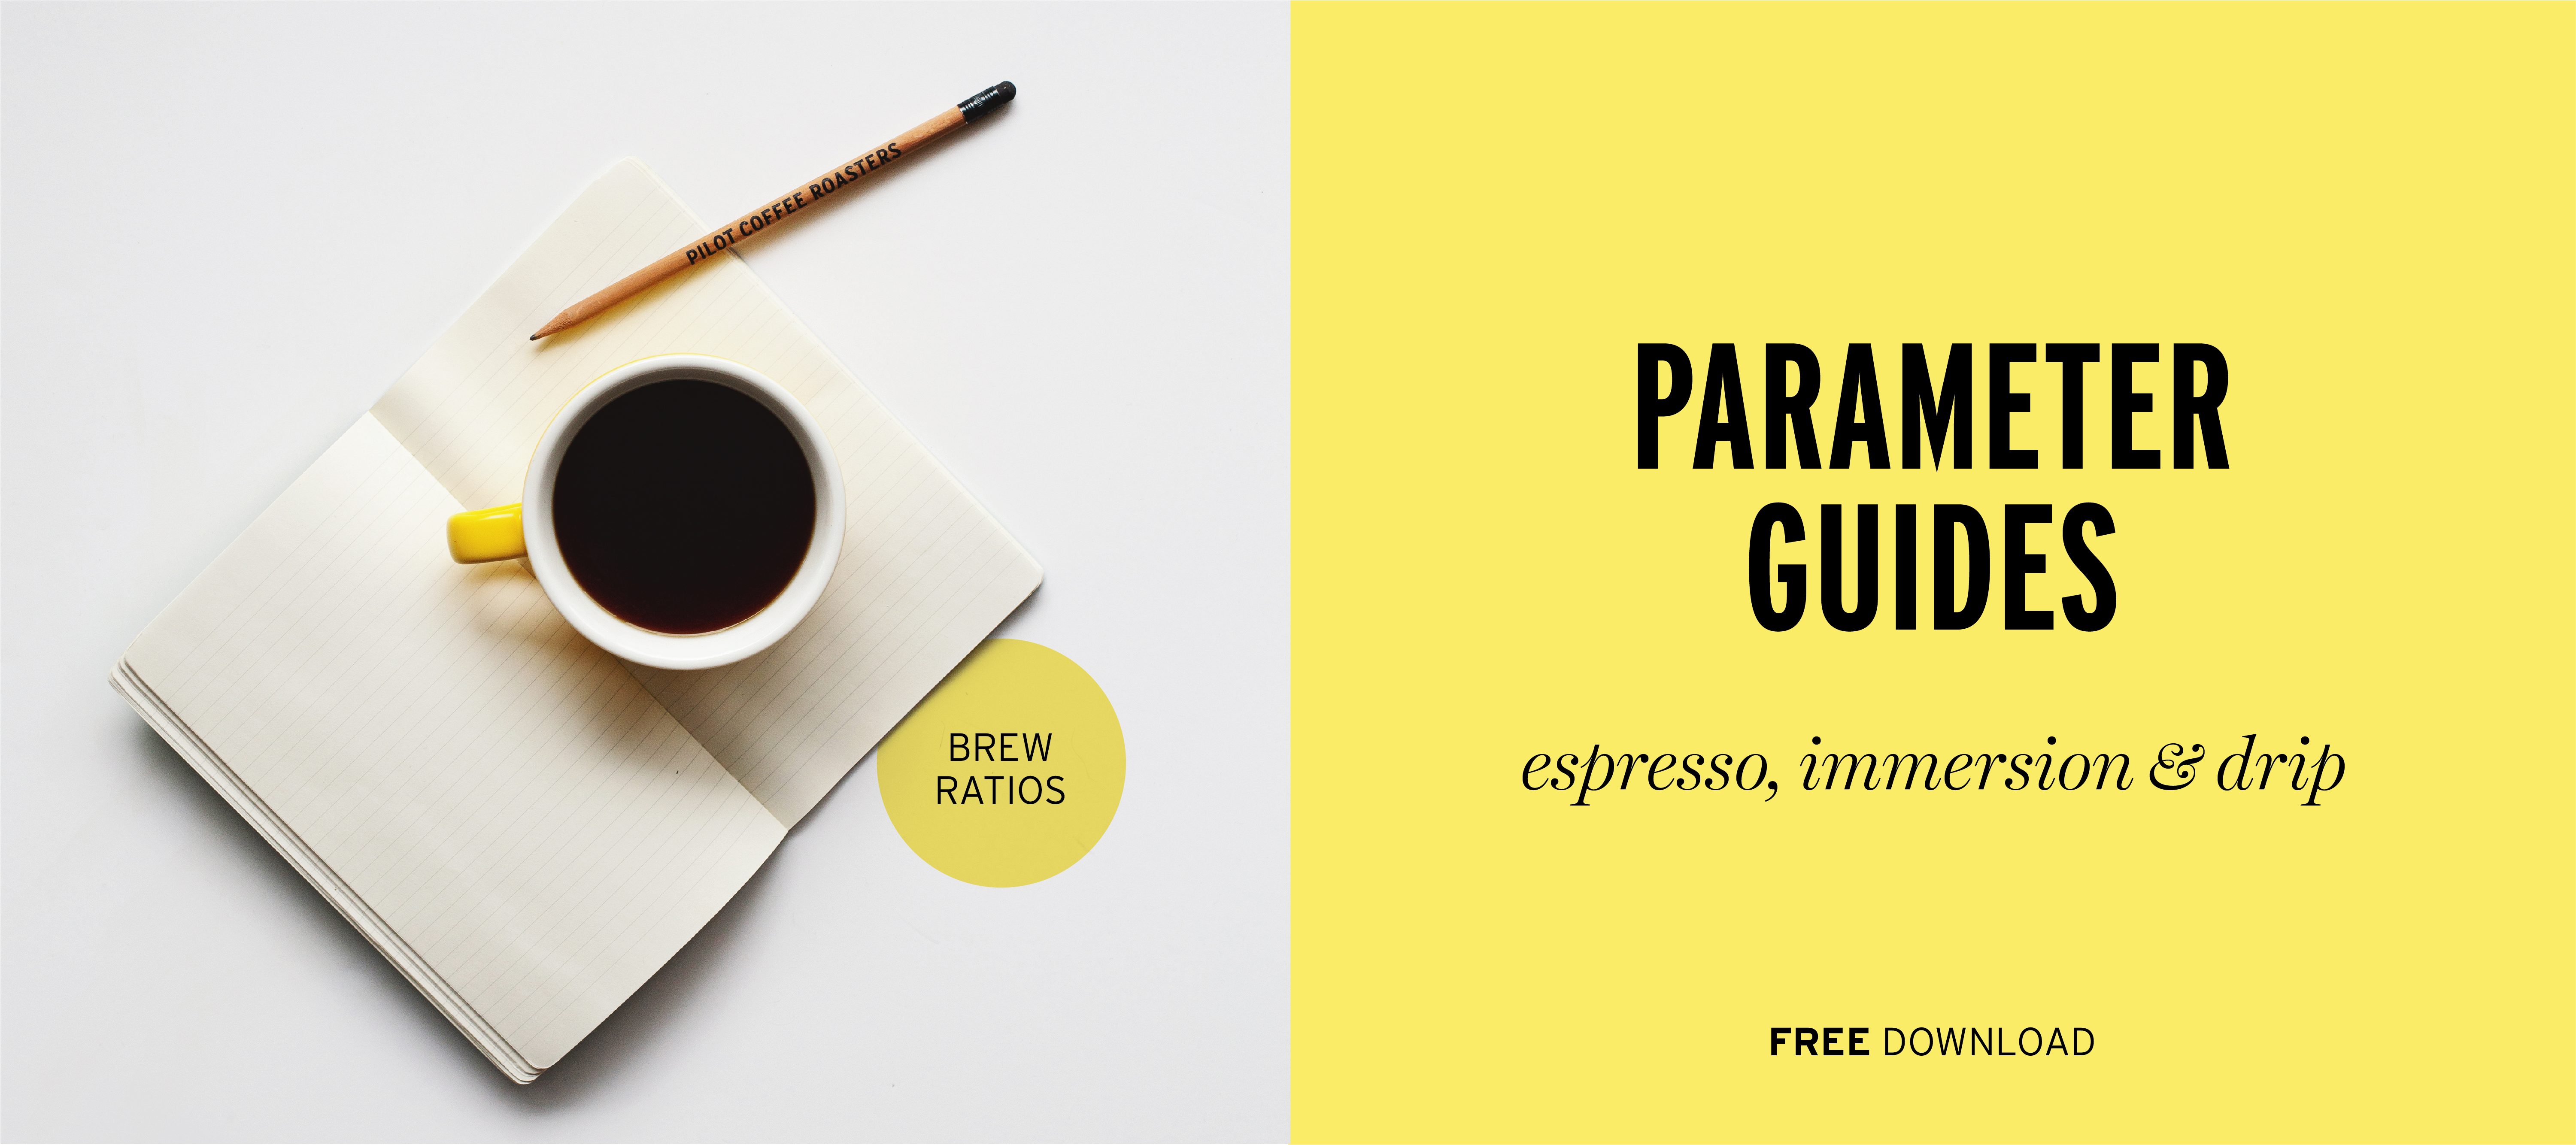 Brewing Parameters for espresso, drip and immersion coffee brewing, free guides